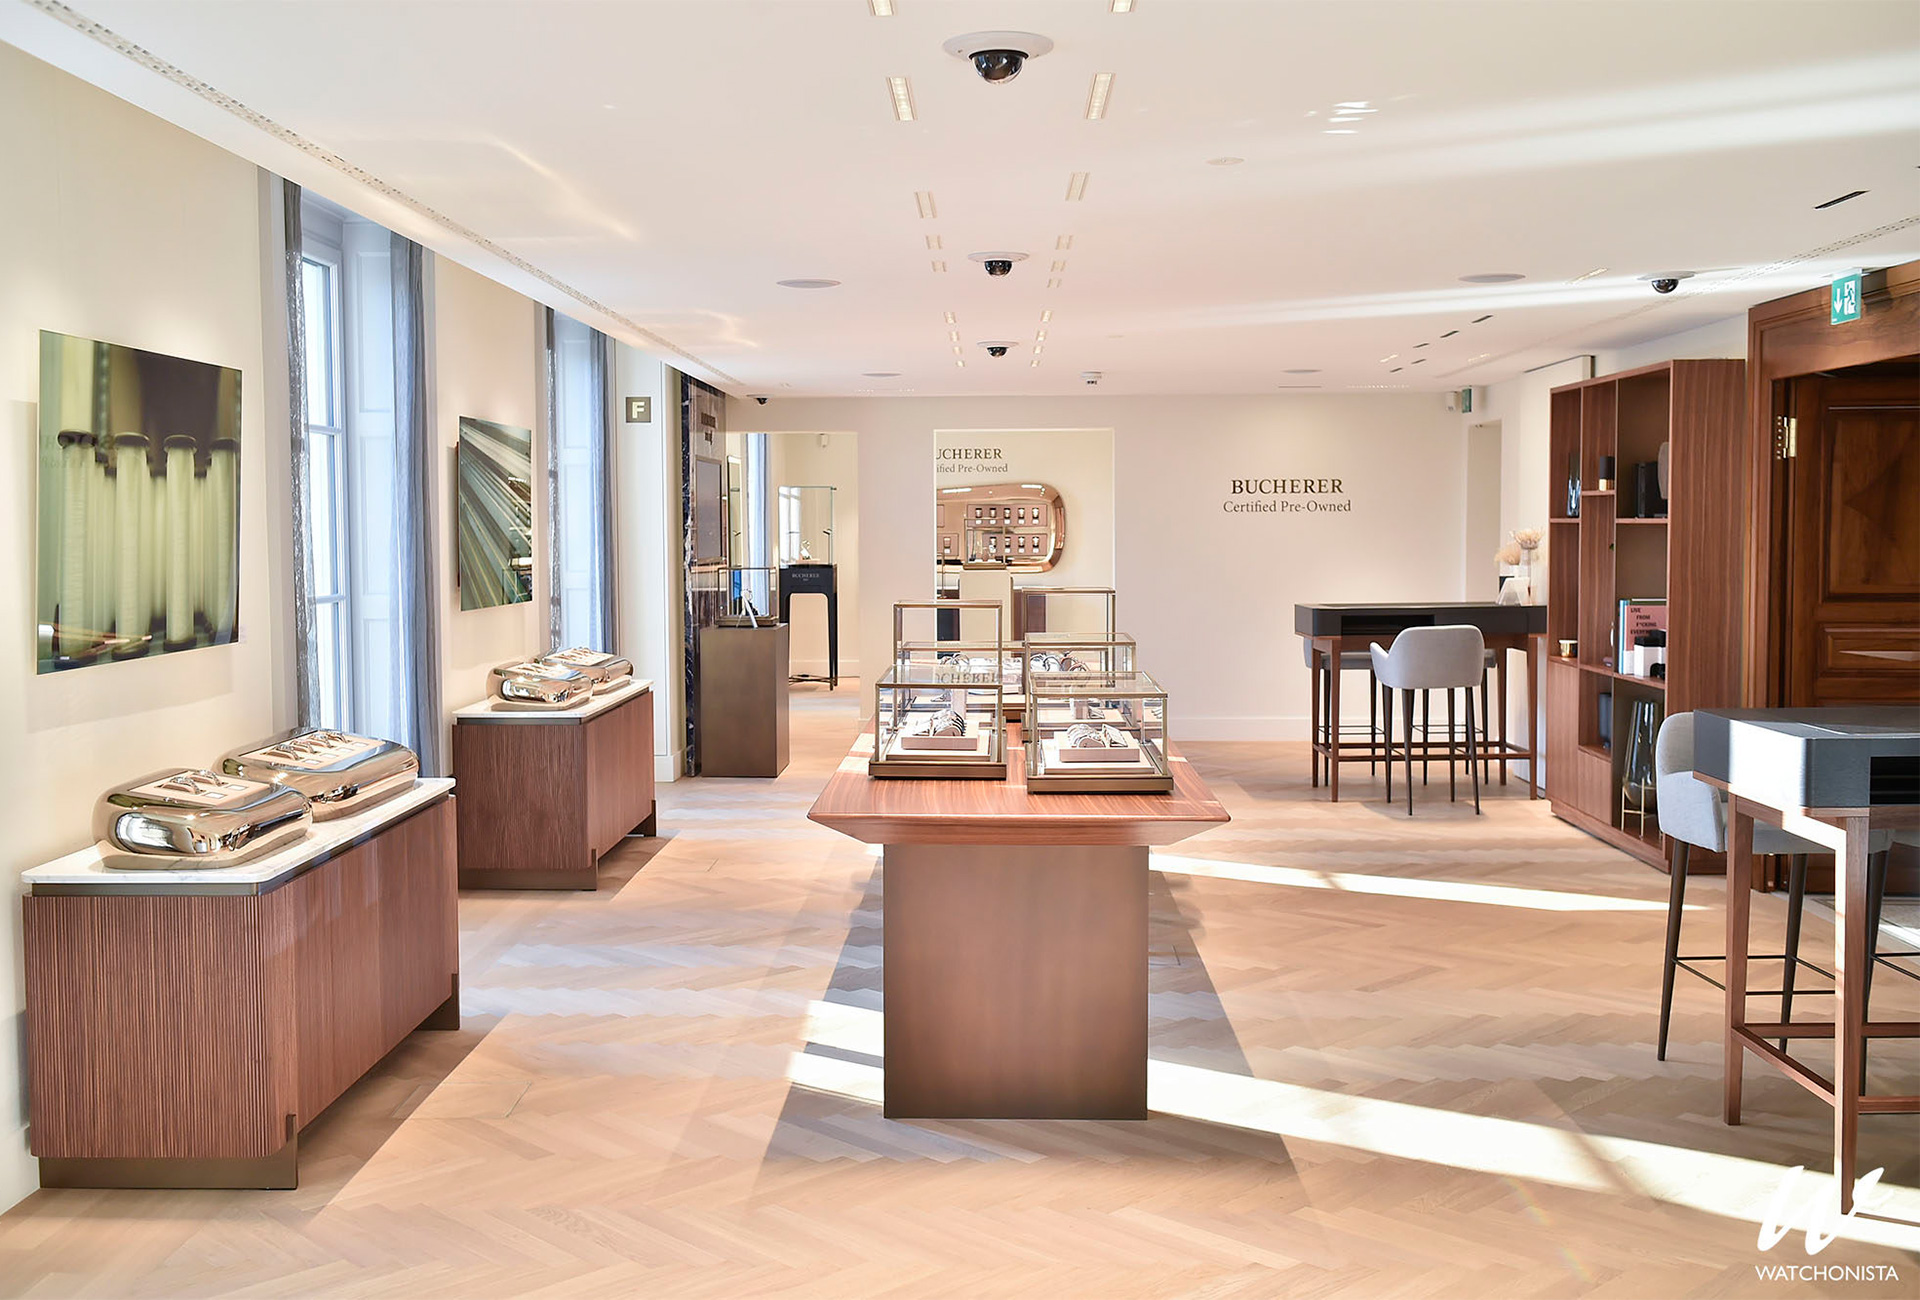 Bucherer Geneva entire floor dedicated to Certified Pre-Owned watches